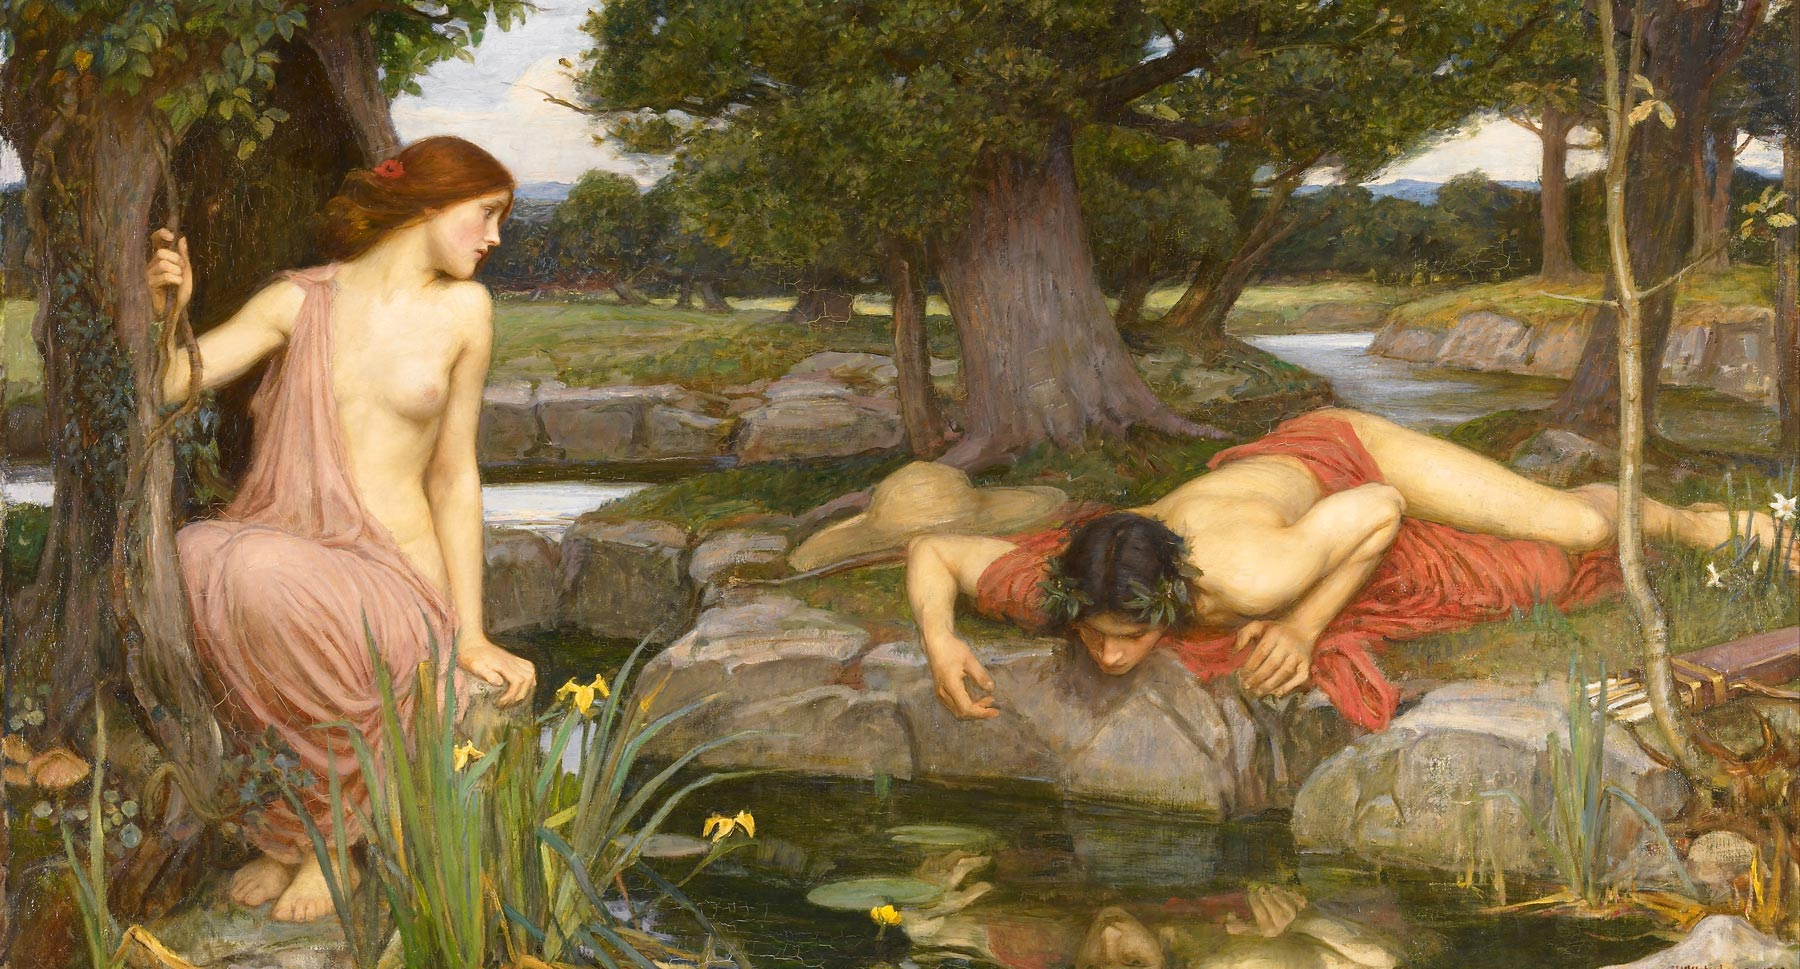 john william waterhouse echo and narcissus - Главная - Заборона